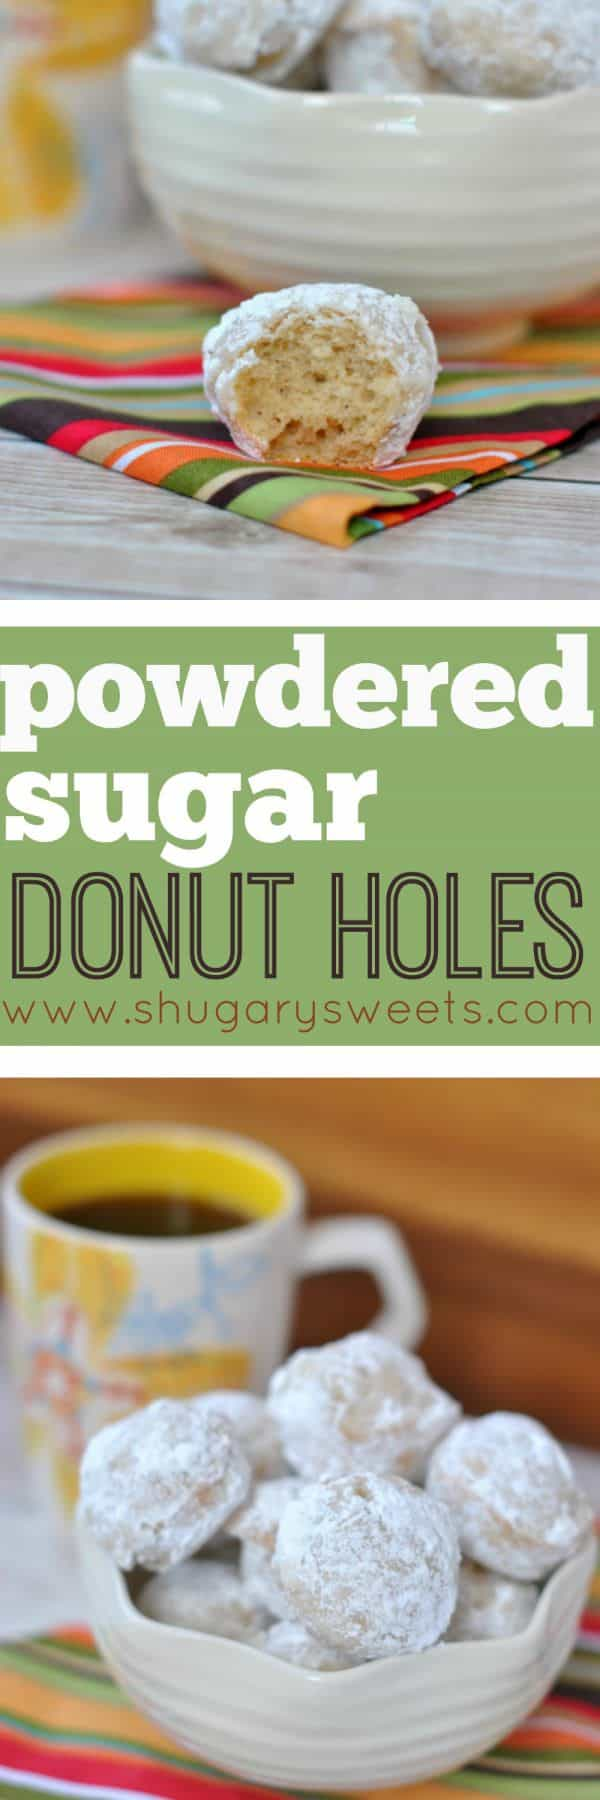 Love donuts for breakfast but hate all the work? These Powdered Sugar Donut Holes are baked (not fried) and ready in under 30 minutes.